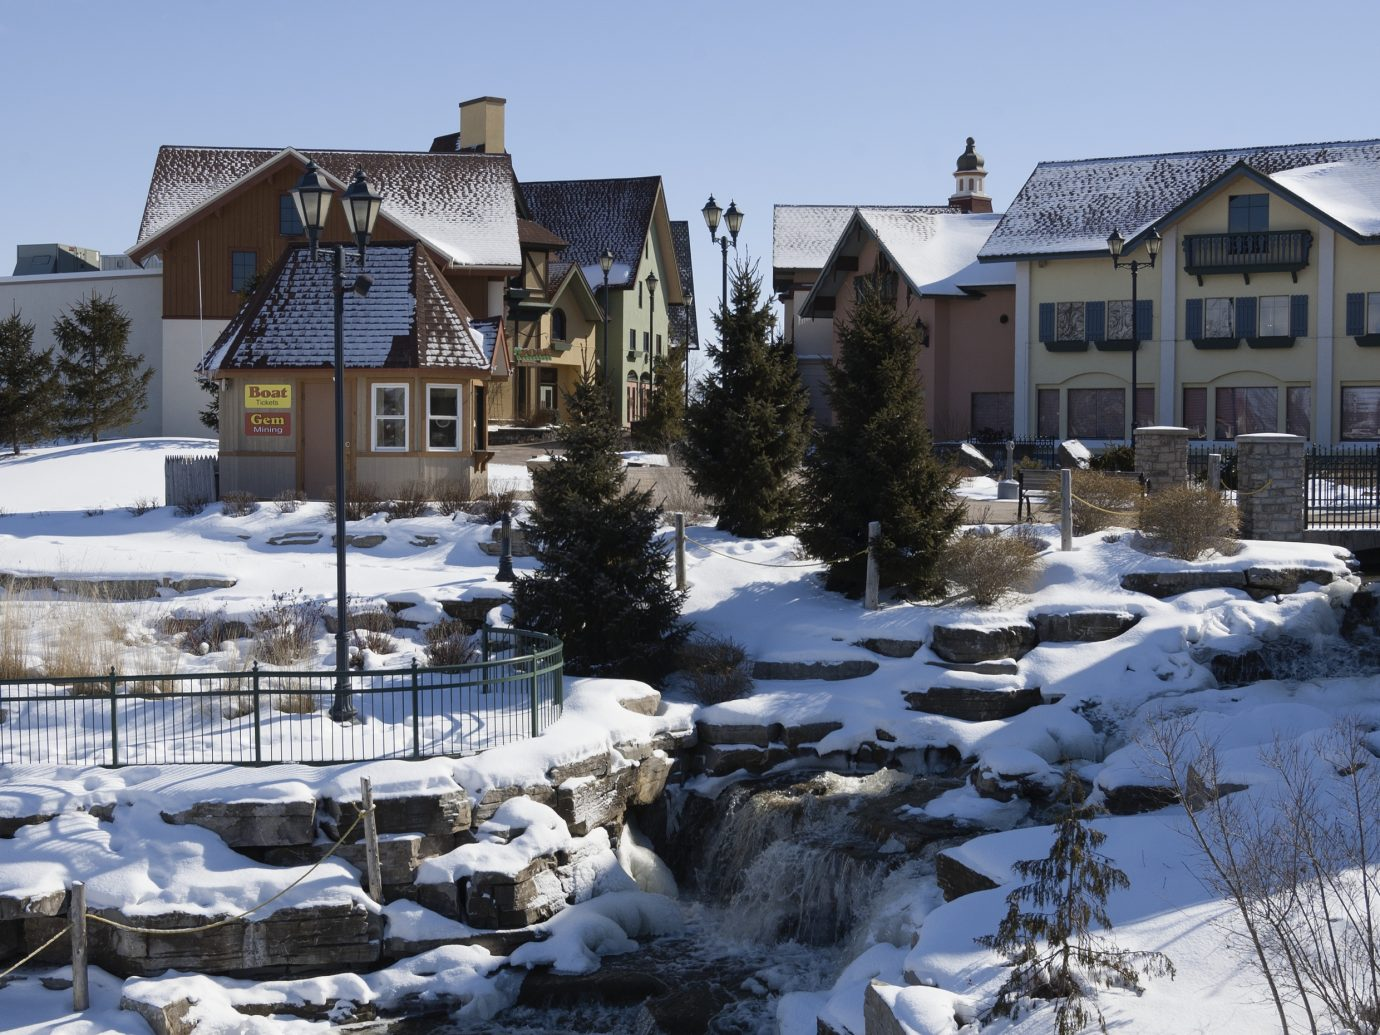 A portion of the River Place shopping district in Frankenmuth, Michigan in winter.